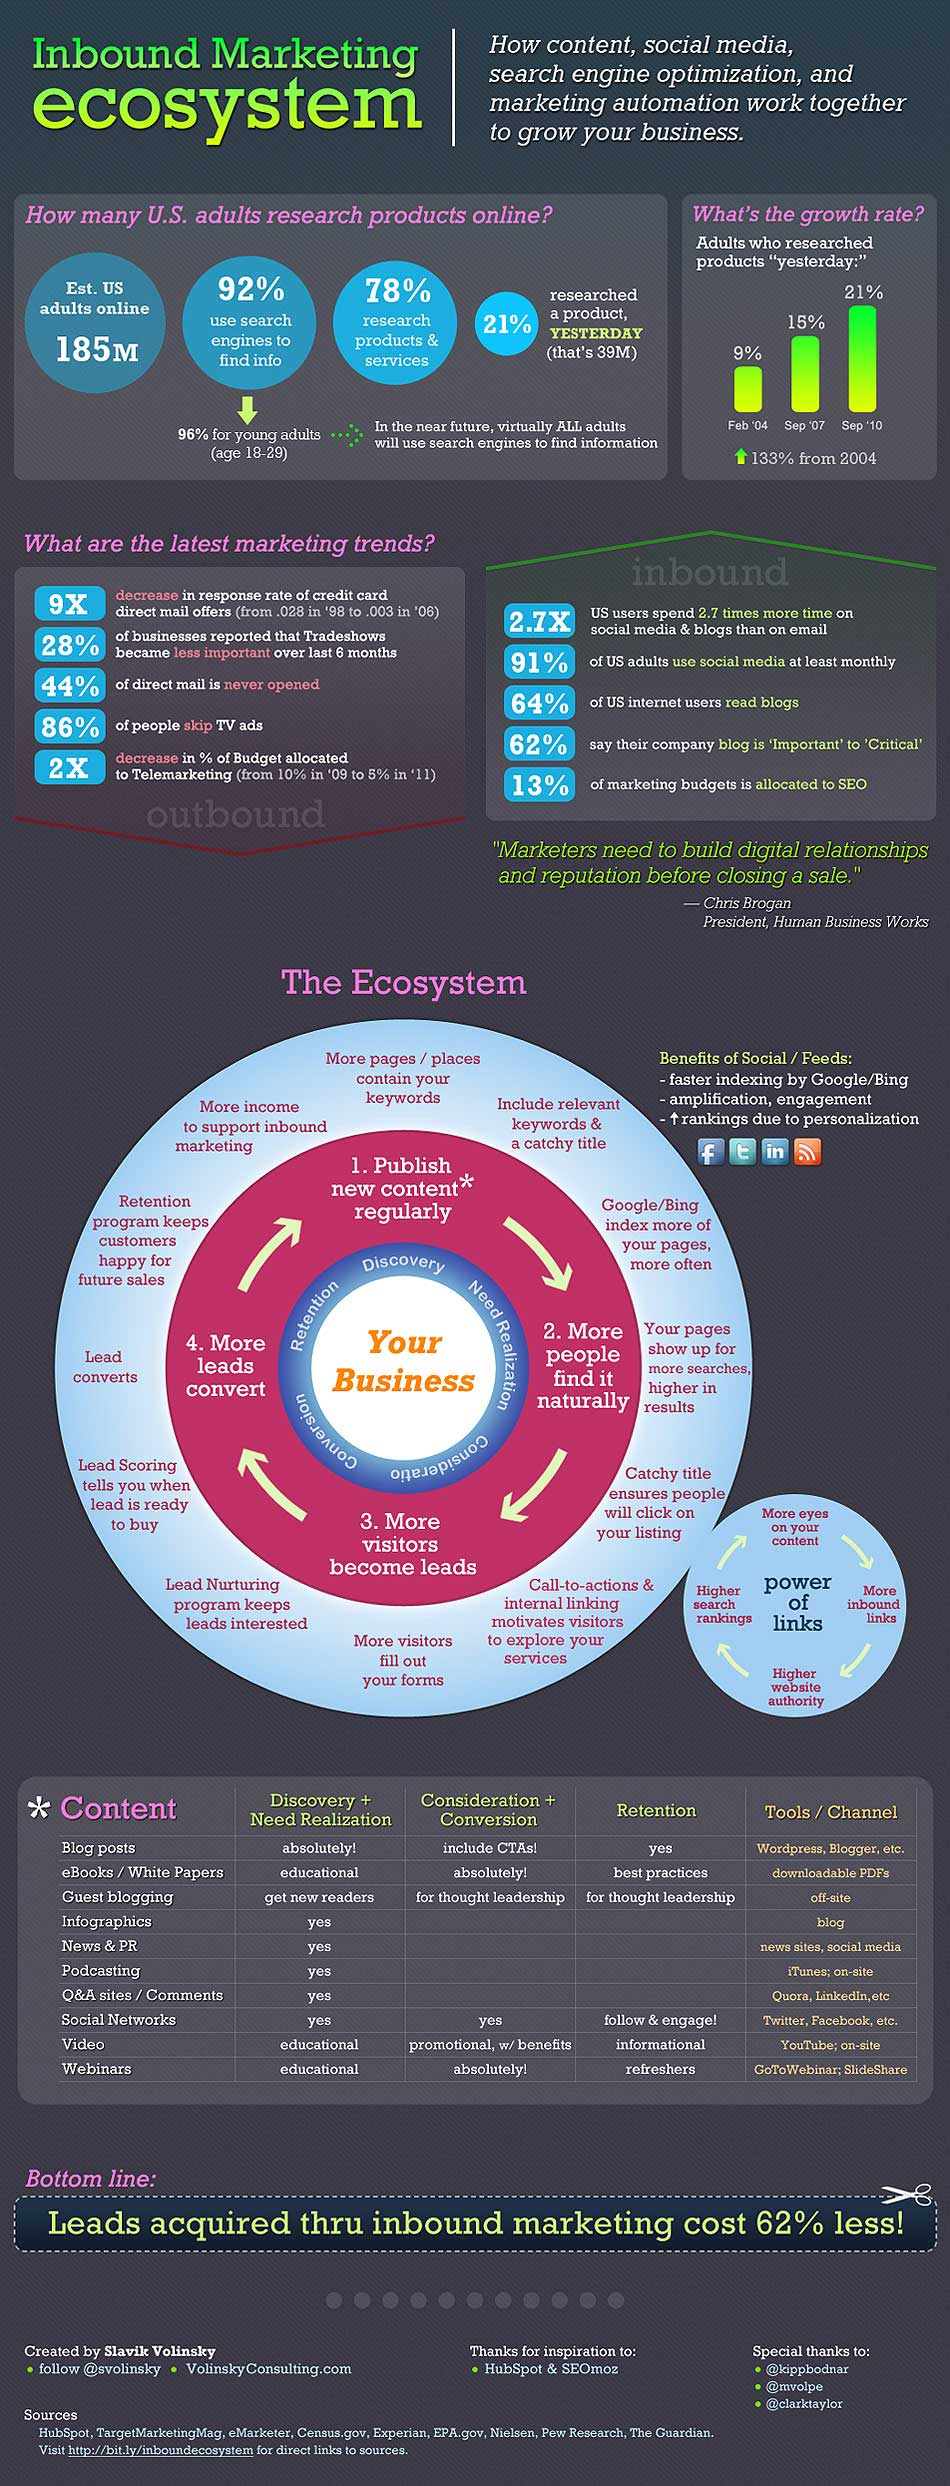 Inbound Marketing Ecosystem - Infographic